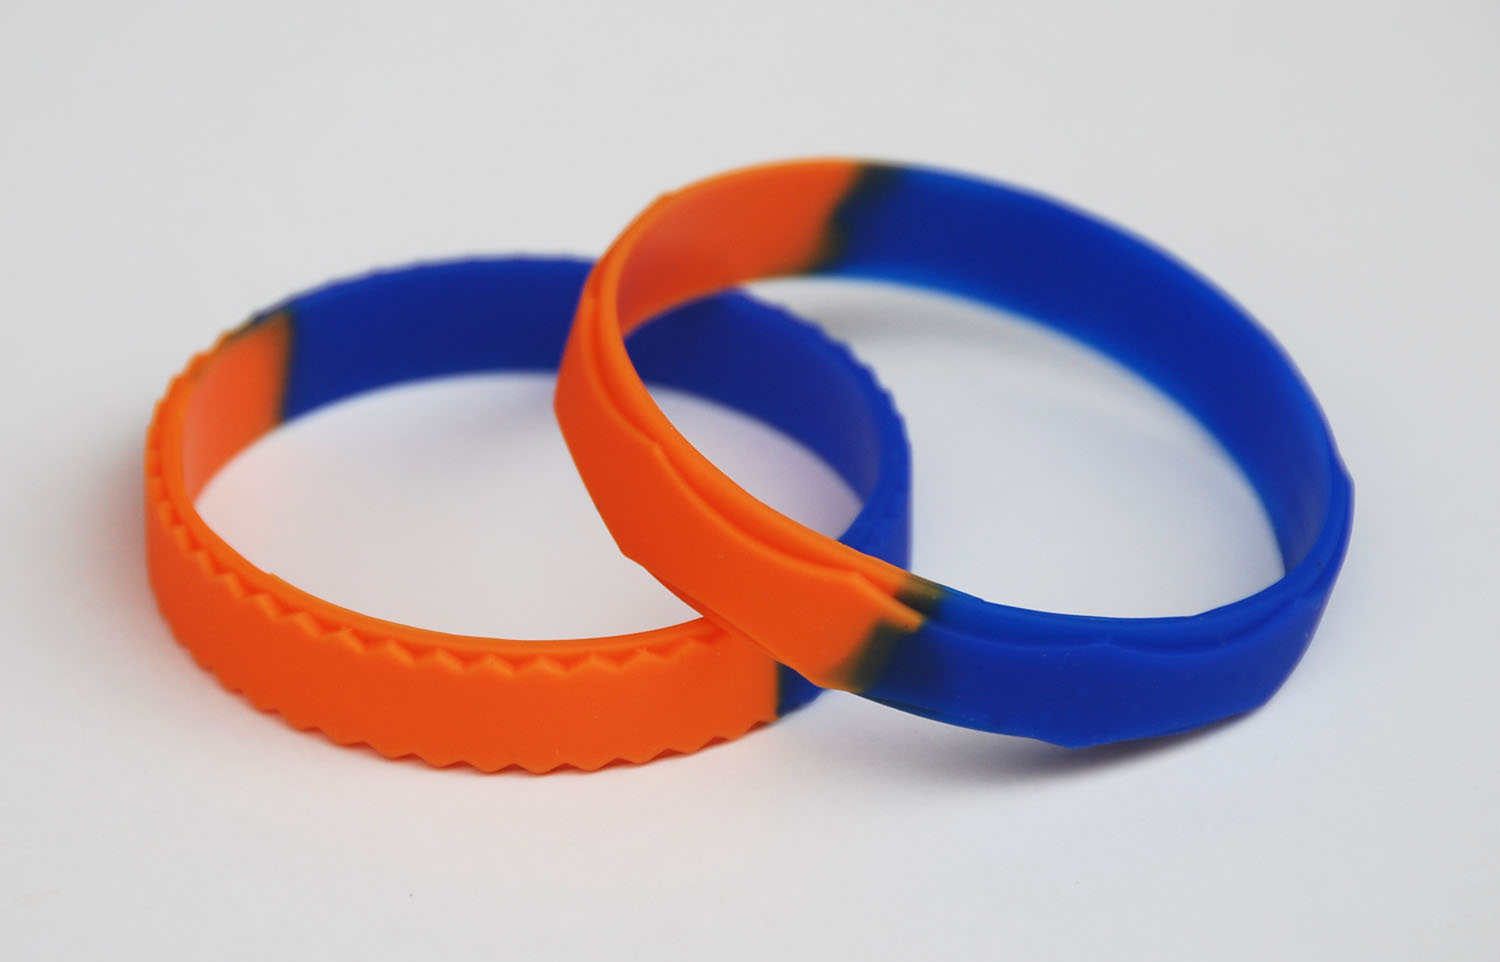 Custom shape silicone baracelets with segmented colors and rueue